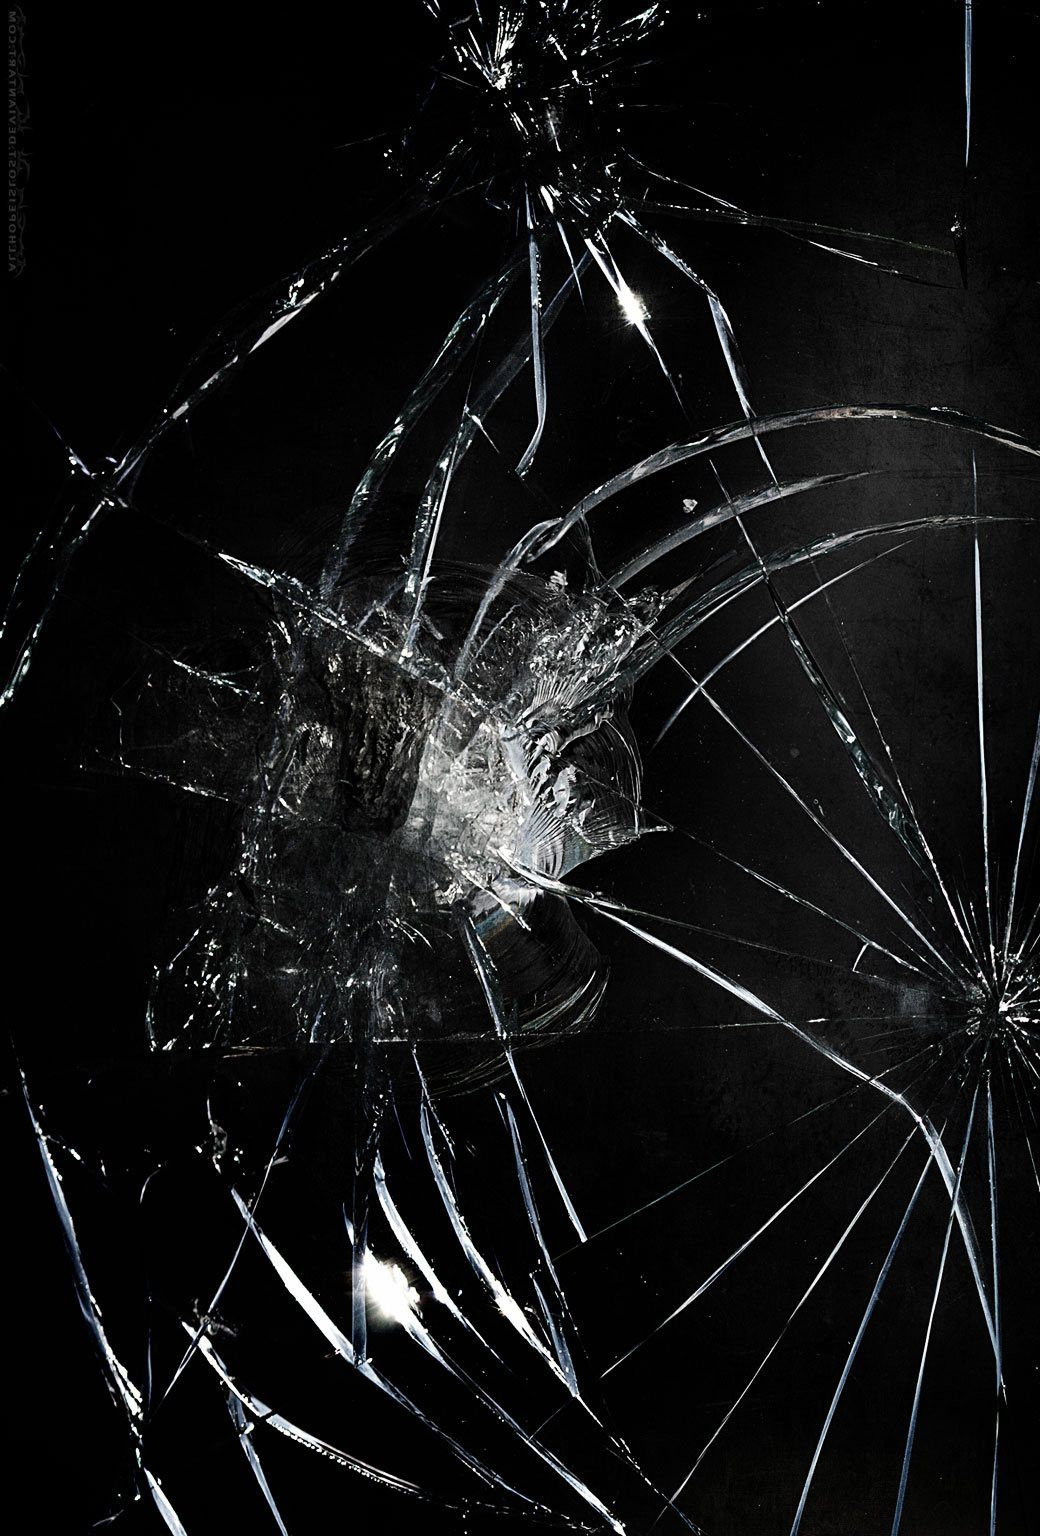 Iphone Cracked Screen Wallpapers Top Free Iphone Cracked